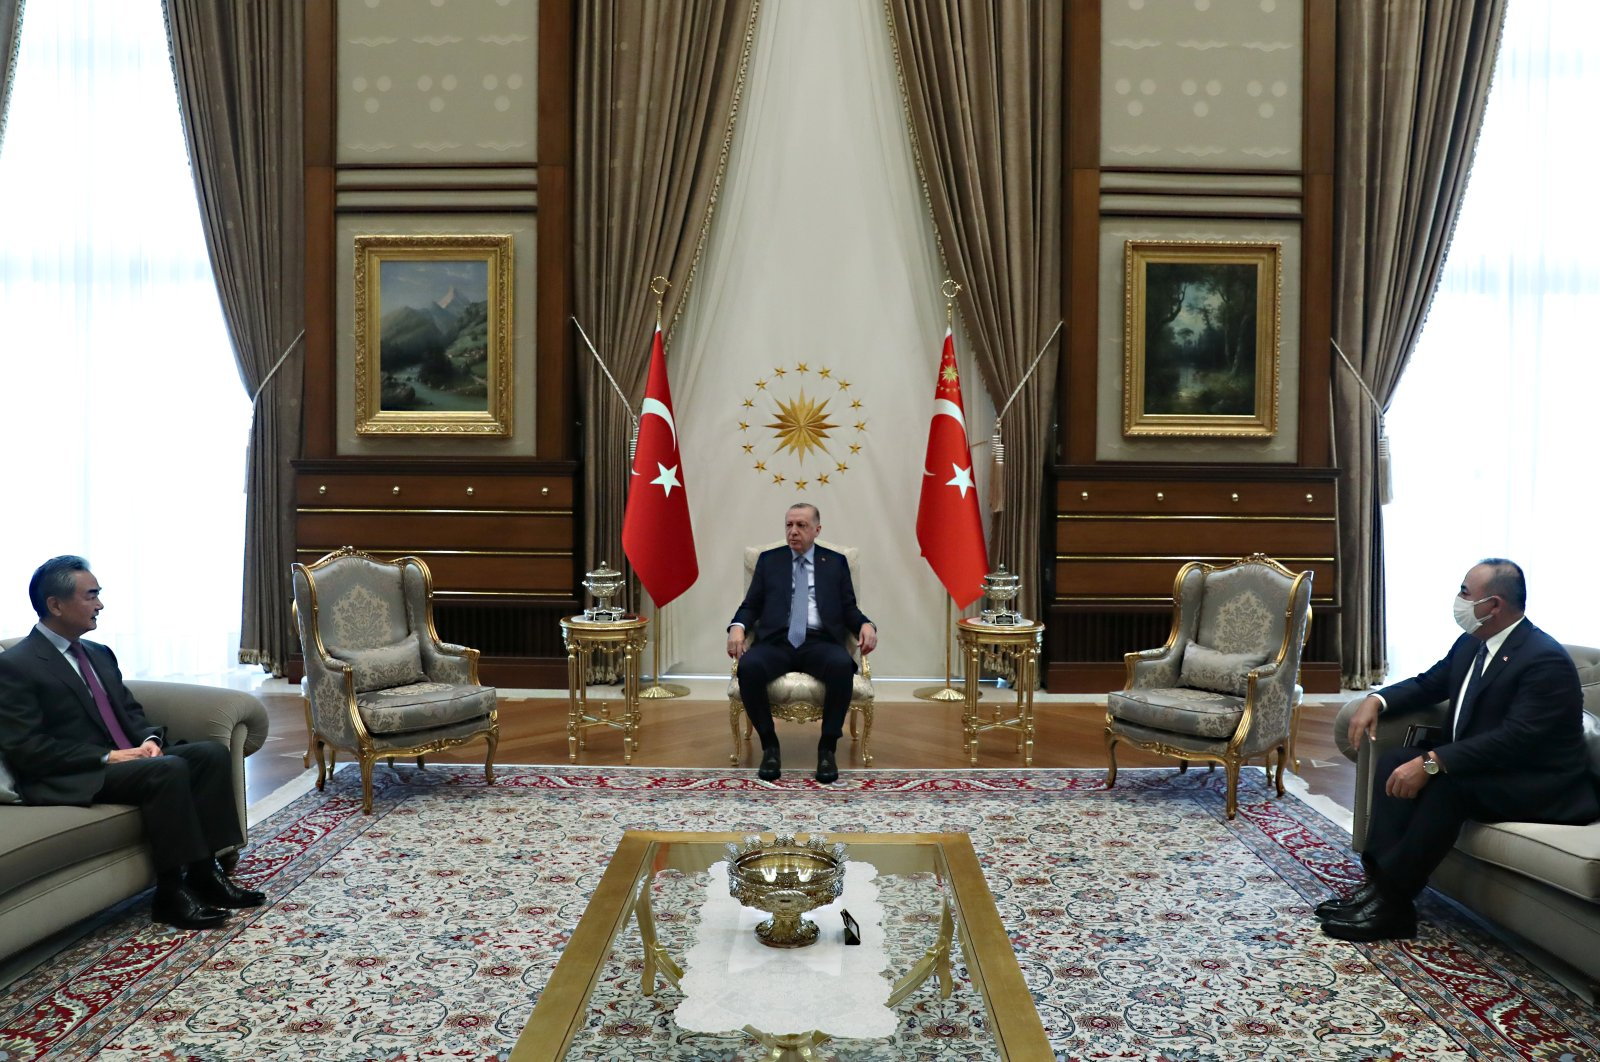 Chinese State Councilor and Foreign Minister Wang Yi (L), Turkish President Recep Tayyip Erdoğan (C) and Foreign Minister Mevlüt Çavuşoğlu meet at the Presidential Palace, Ankara, Turkey, March 25, 2021. (REUTERS)